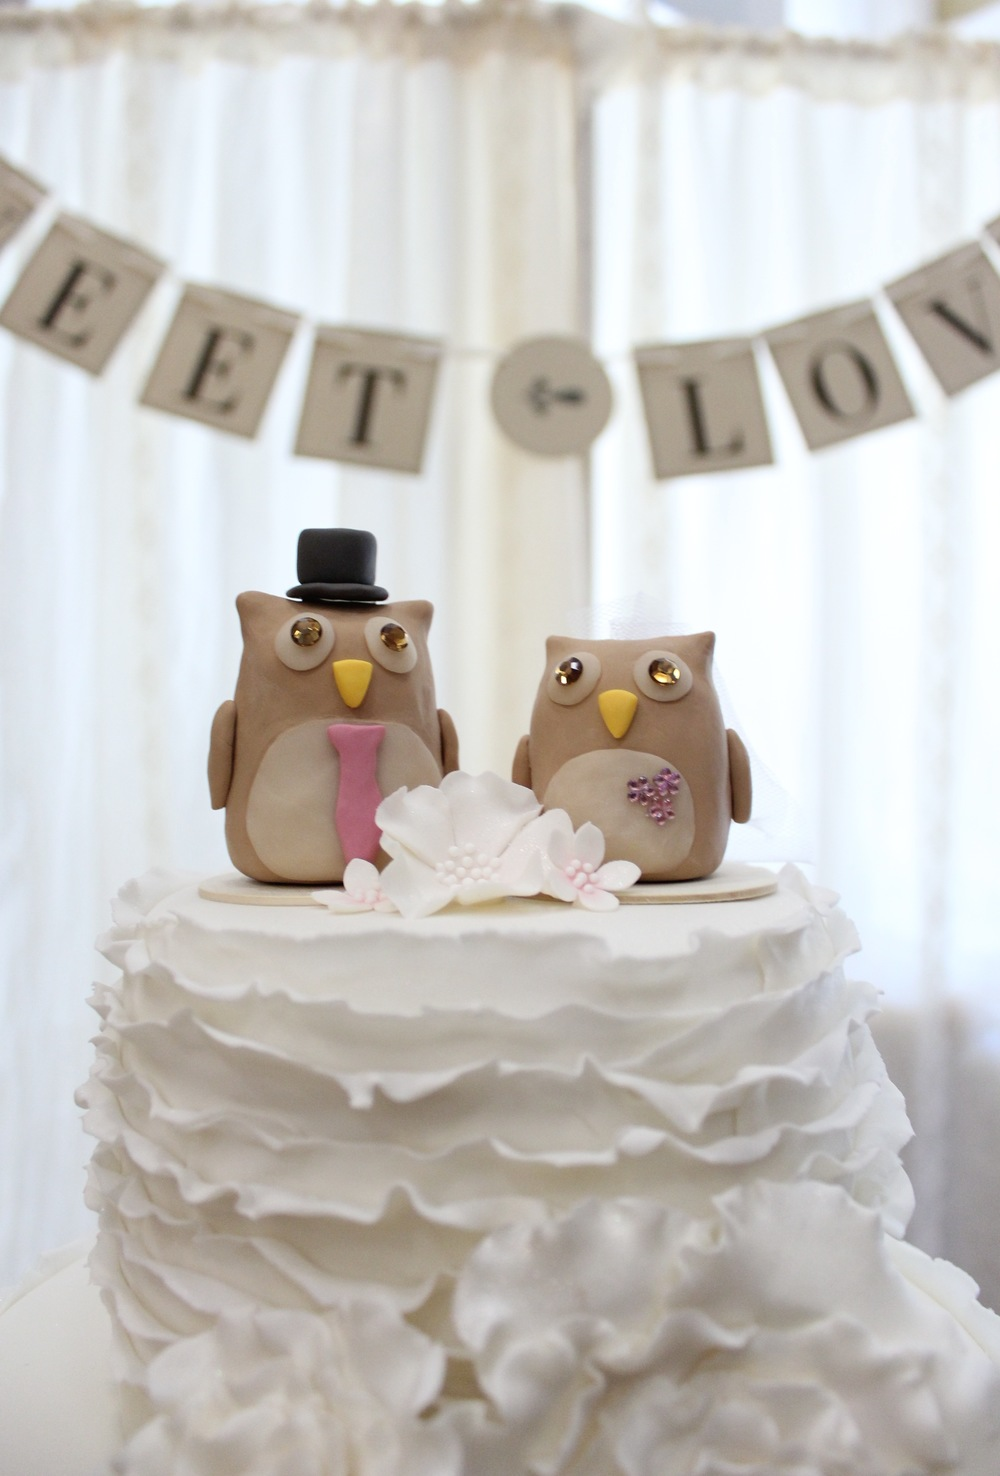 Weddings — Baked Goods Unlimited